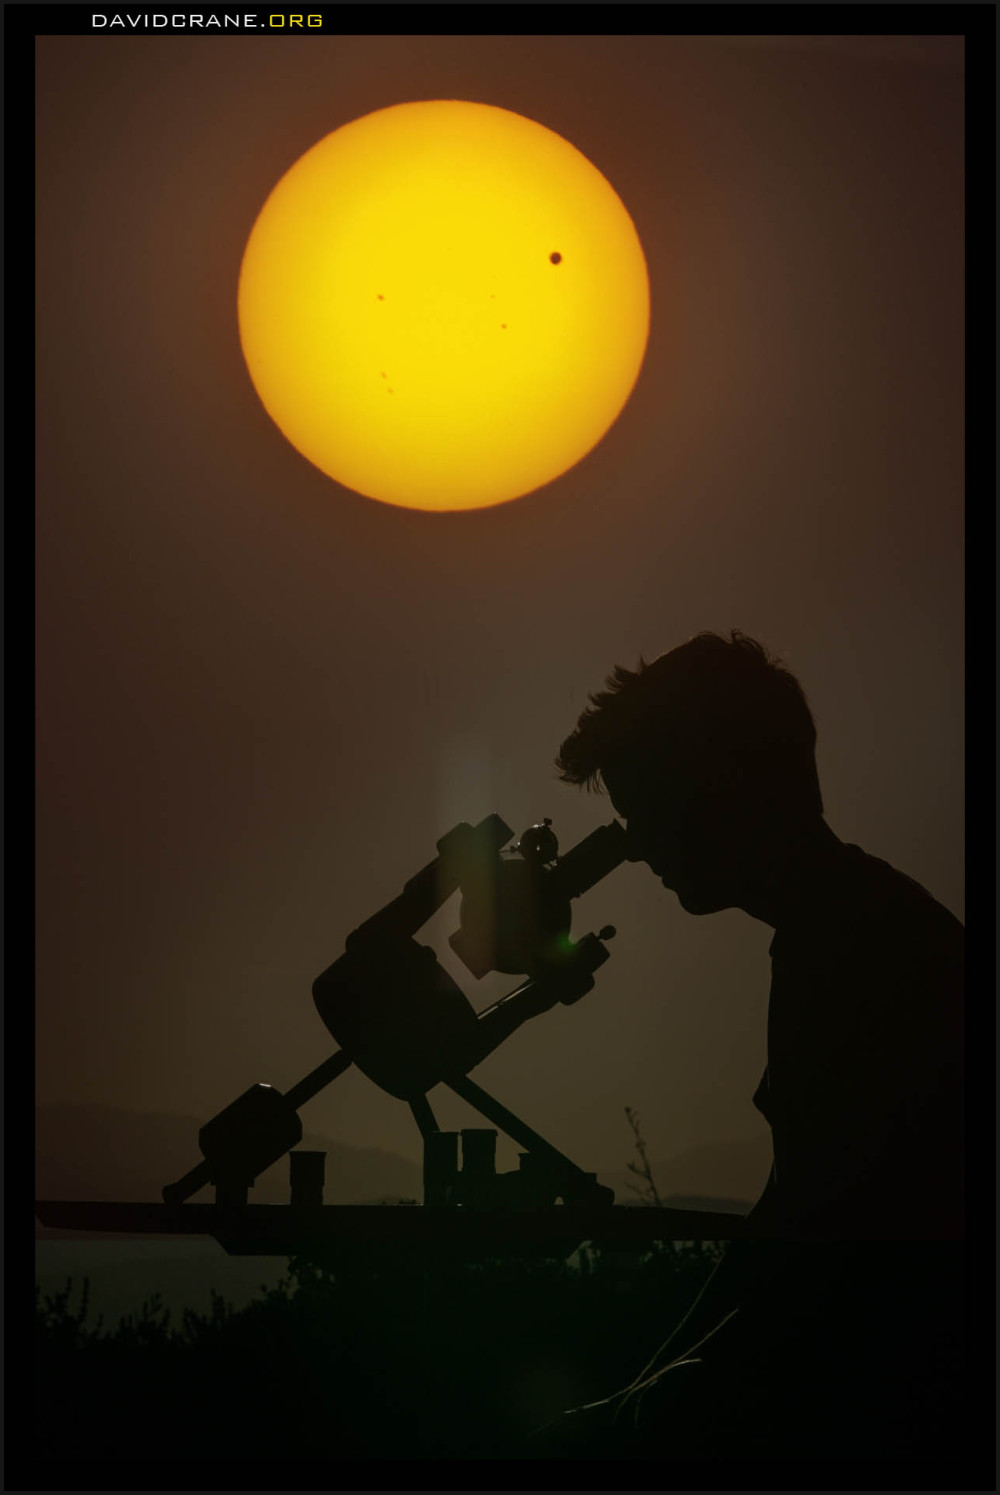 Venus crosses the sun